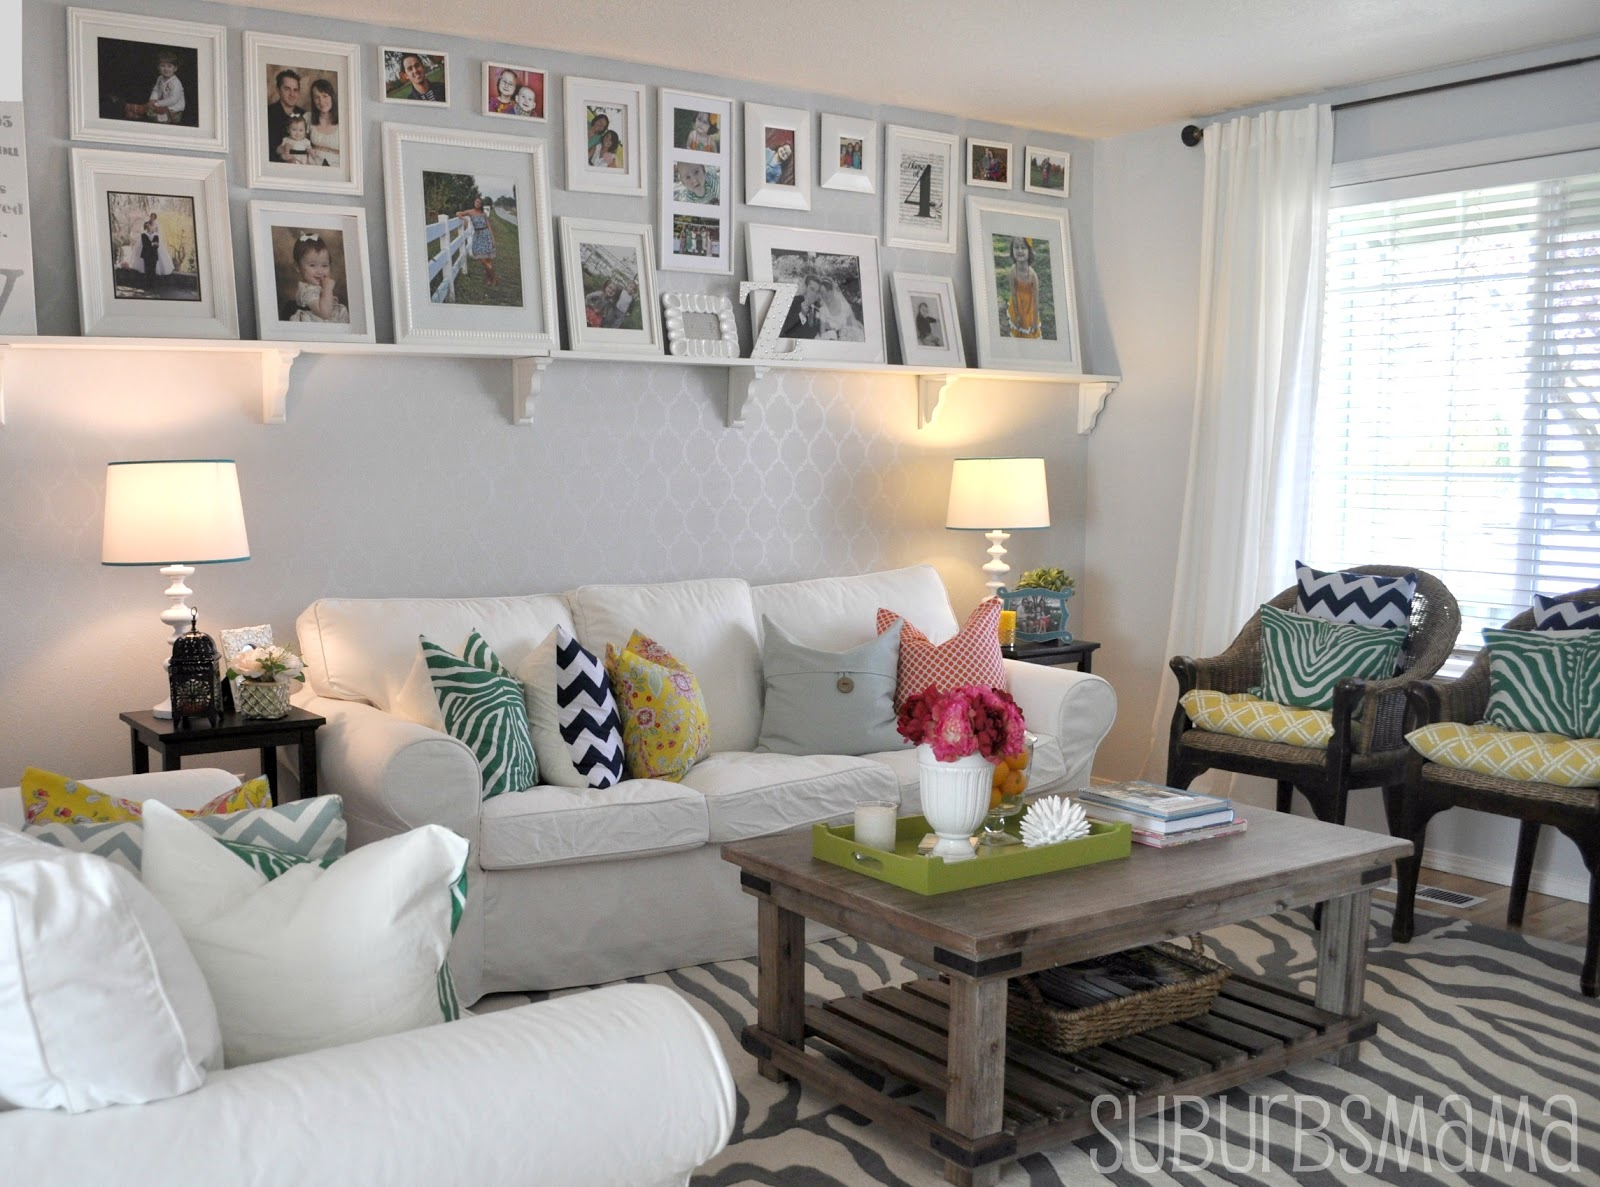 Suburbs Mama: The Living Room Updated